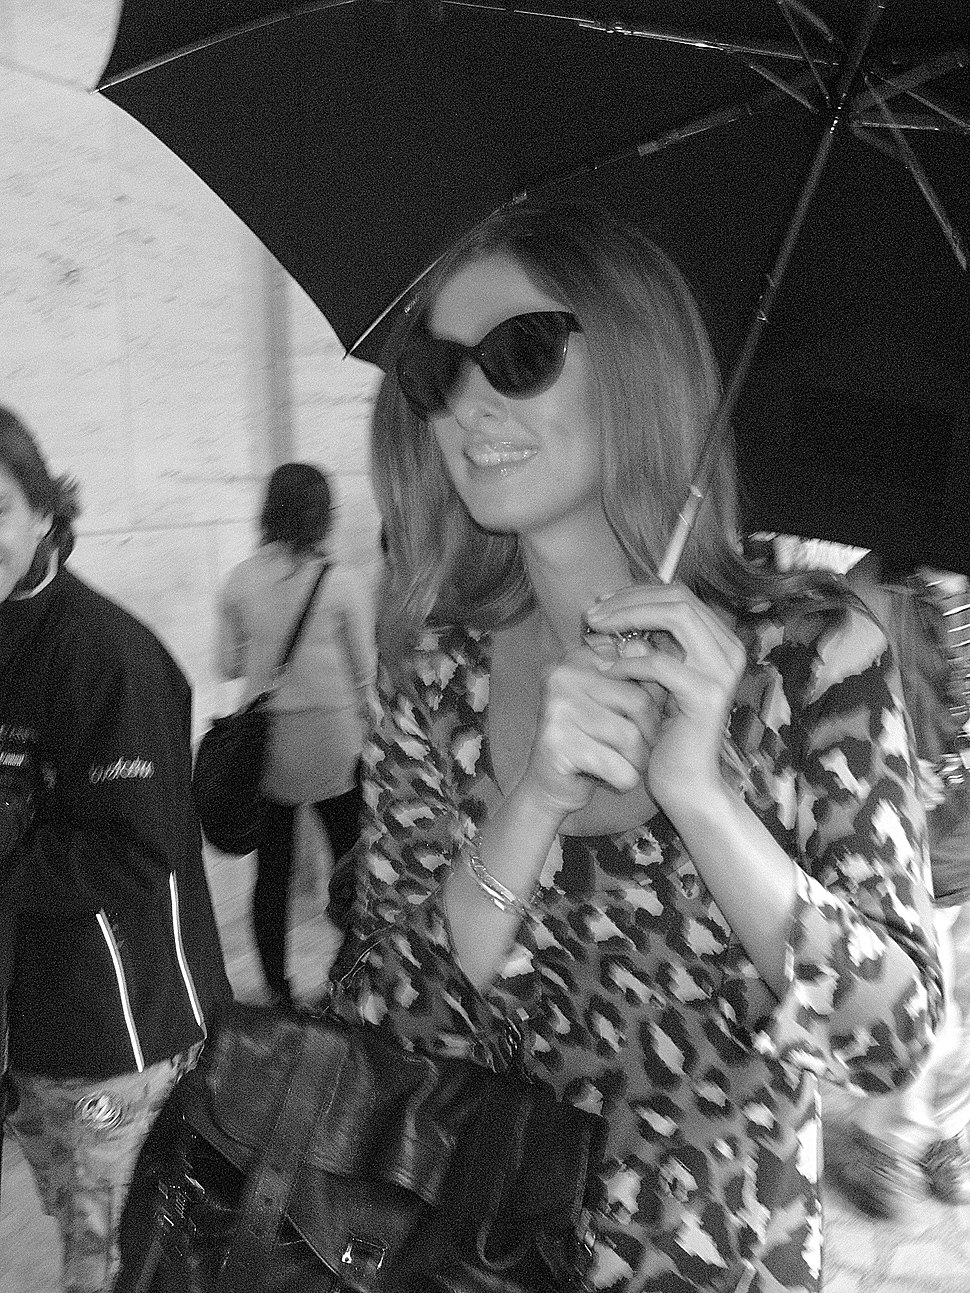 Nicky Hilton @ 2010 New York Fashion Week 01